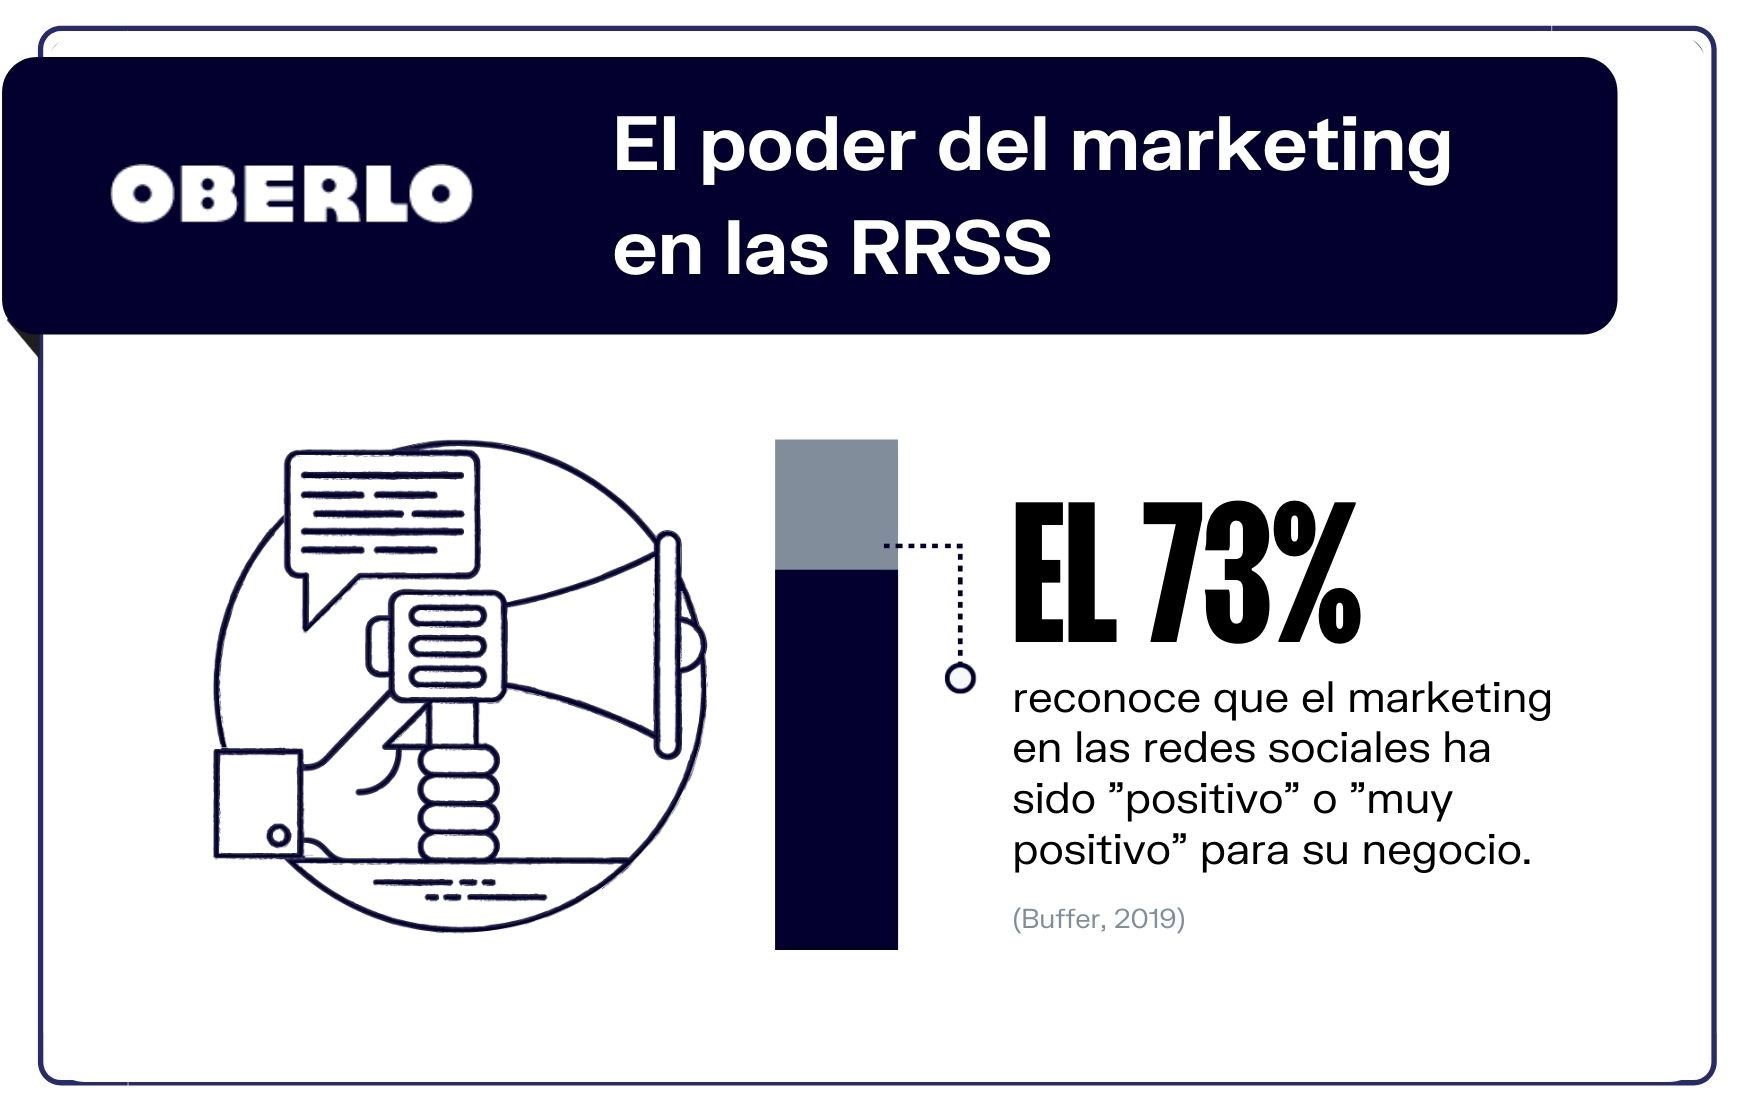 Estadísticas de redes sociales 2020 en el marketing